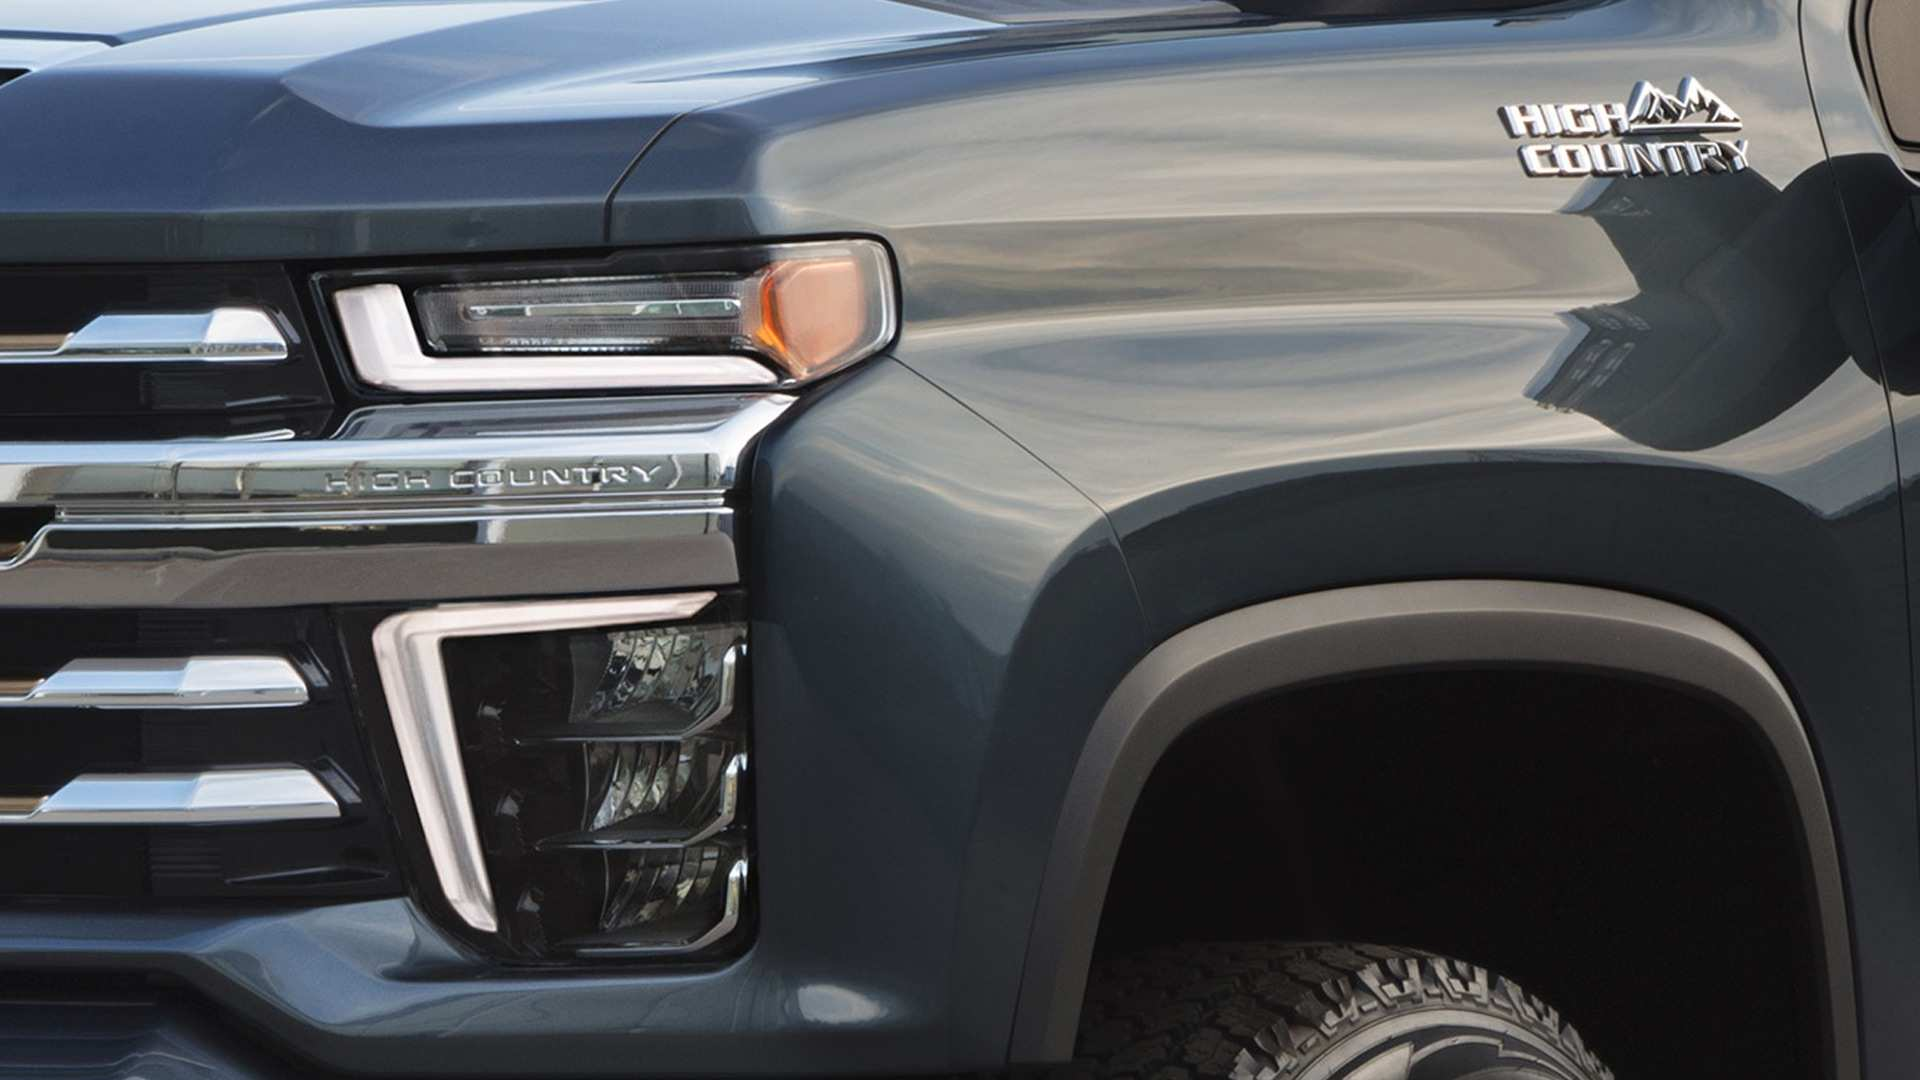 90 New Chevrolet High Country 2020 Price And Review